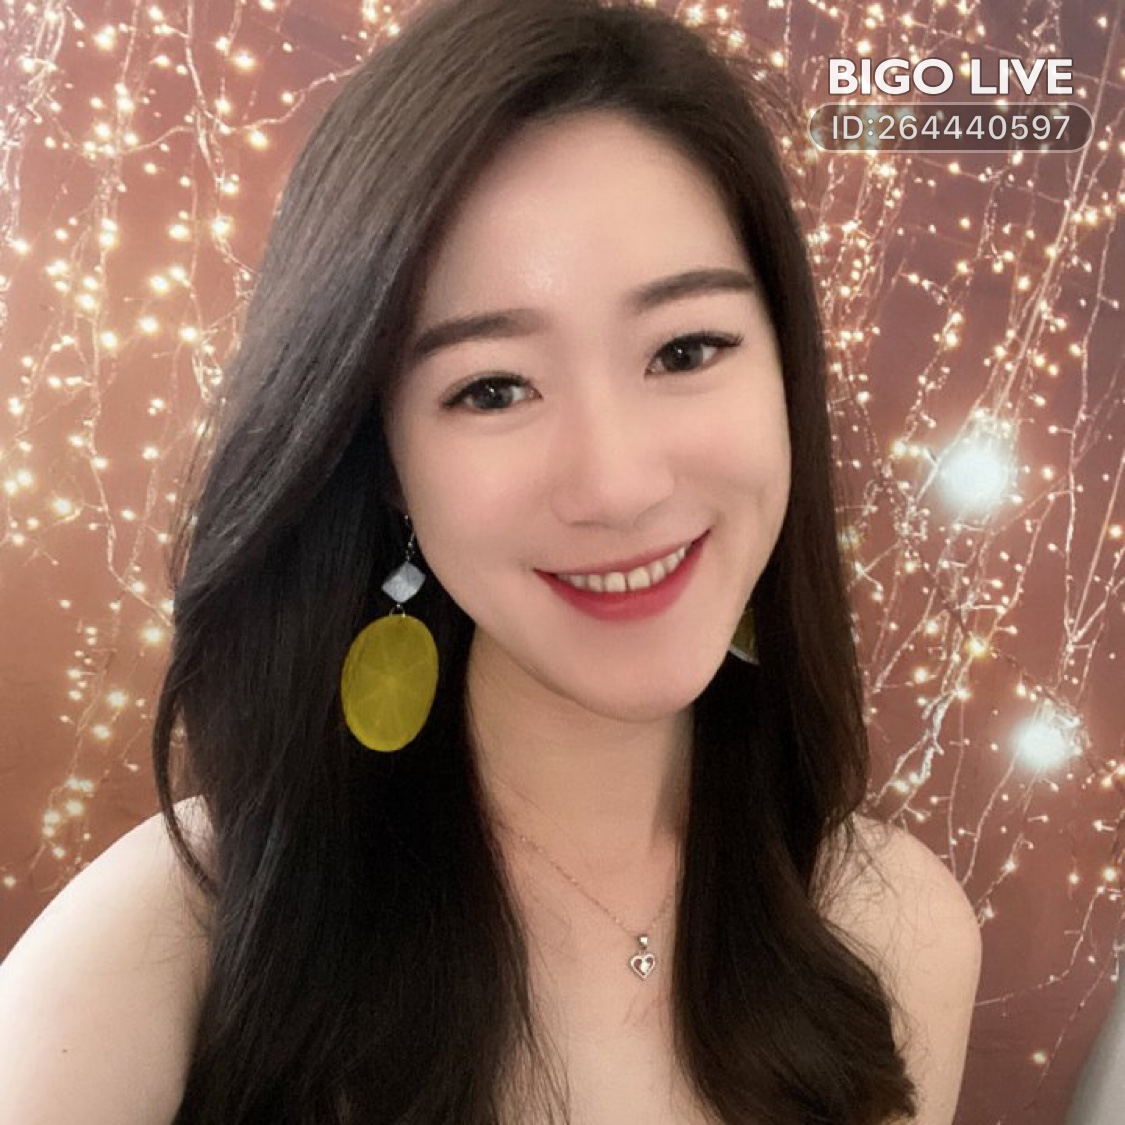 Come and see 守娜❤️美好的九月🙆🏻♀️'s LIVE in #BIGOLIVE: #music 想我吗?😆😆   https://t.co/i3uz29At2S https://t.co/JUyyQRiqTa